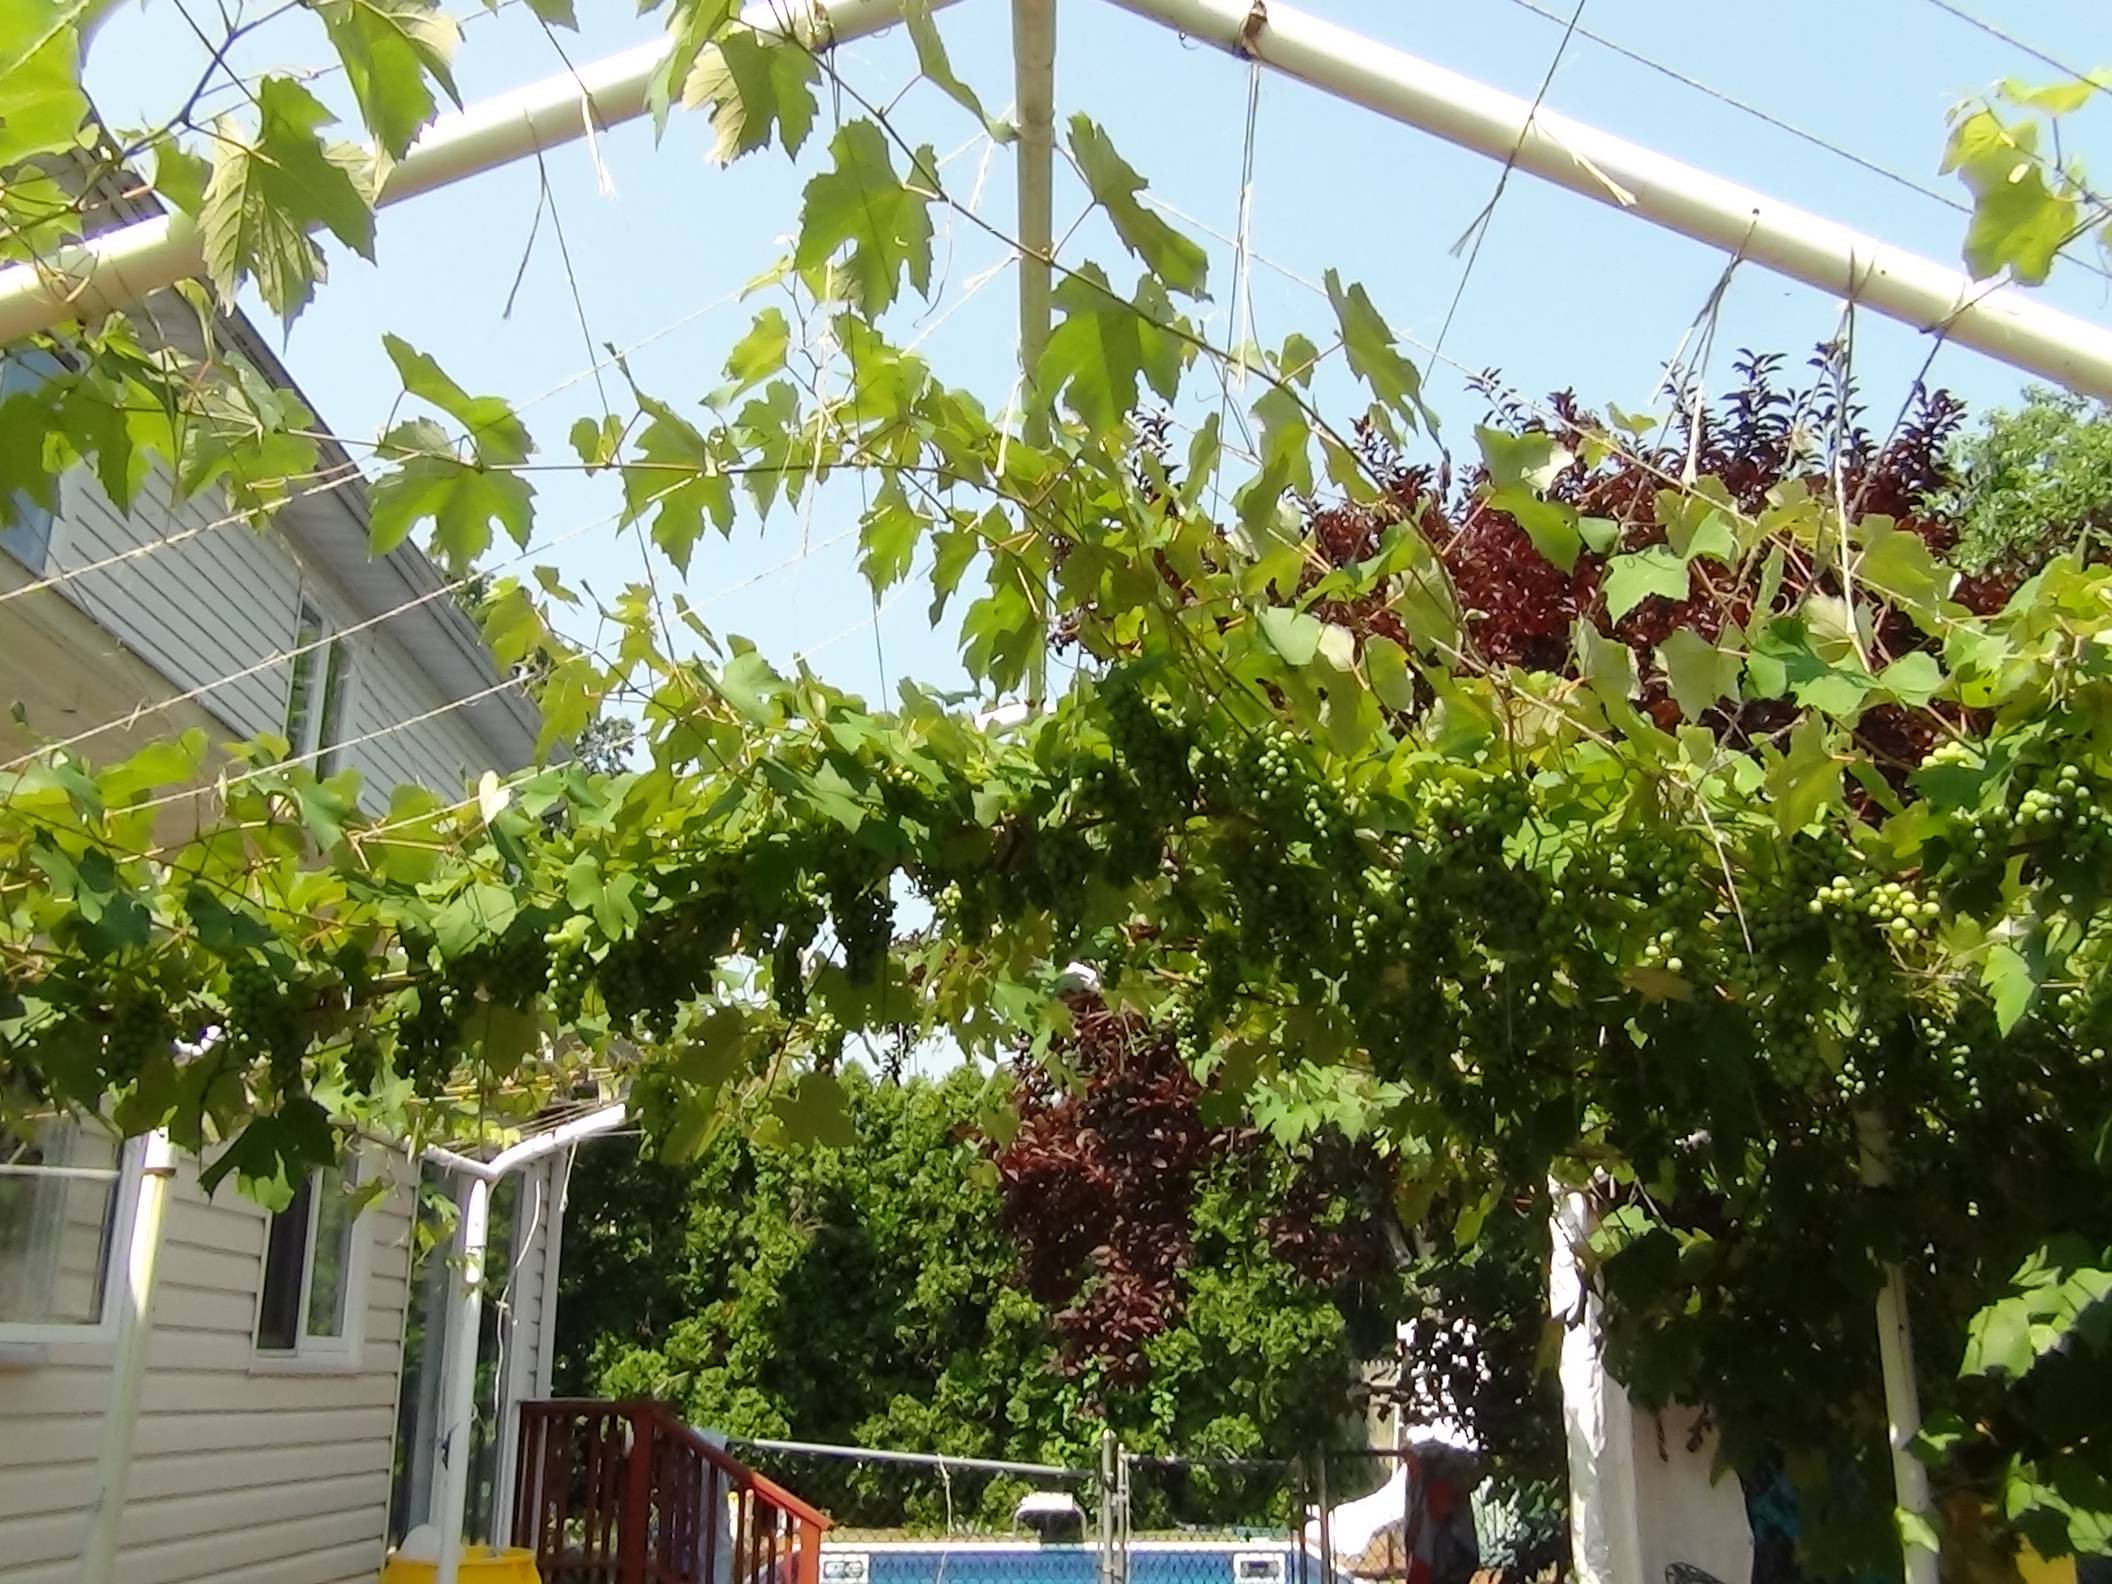 Growing Grapes In Backyard  My mom has been growing grapes in our backyard She